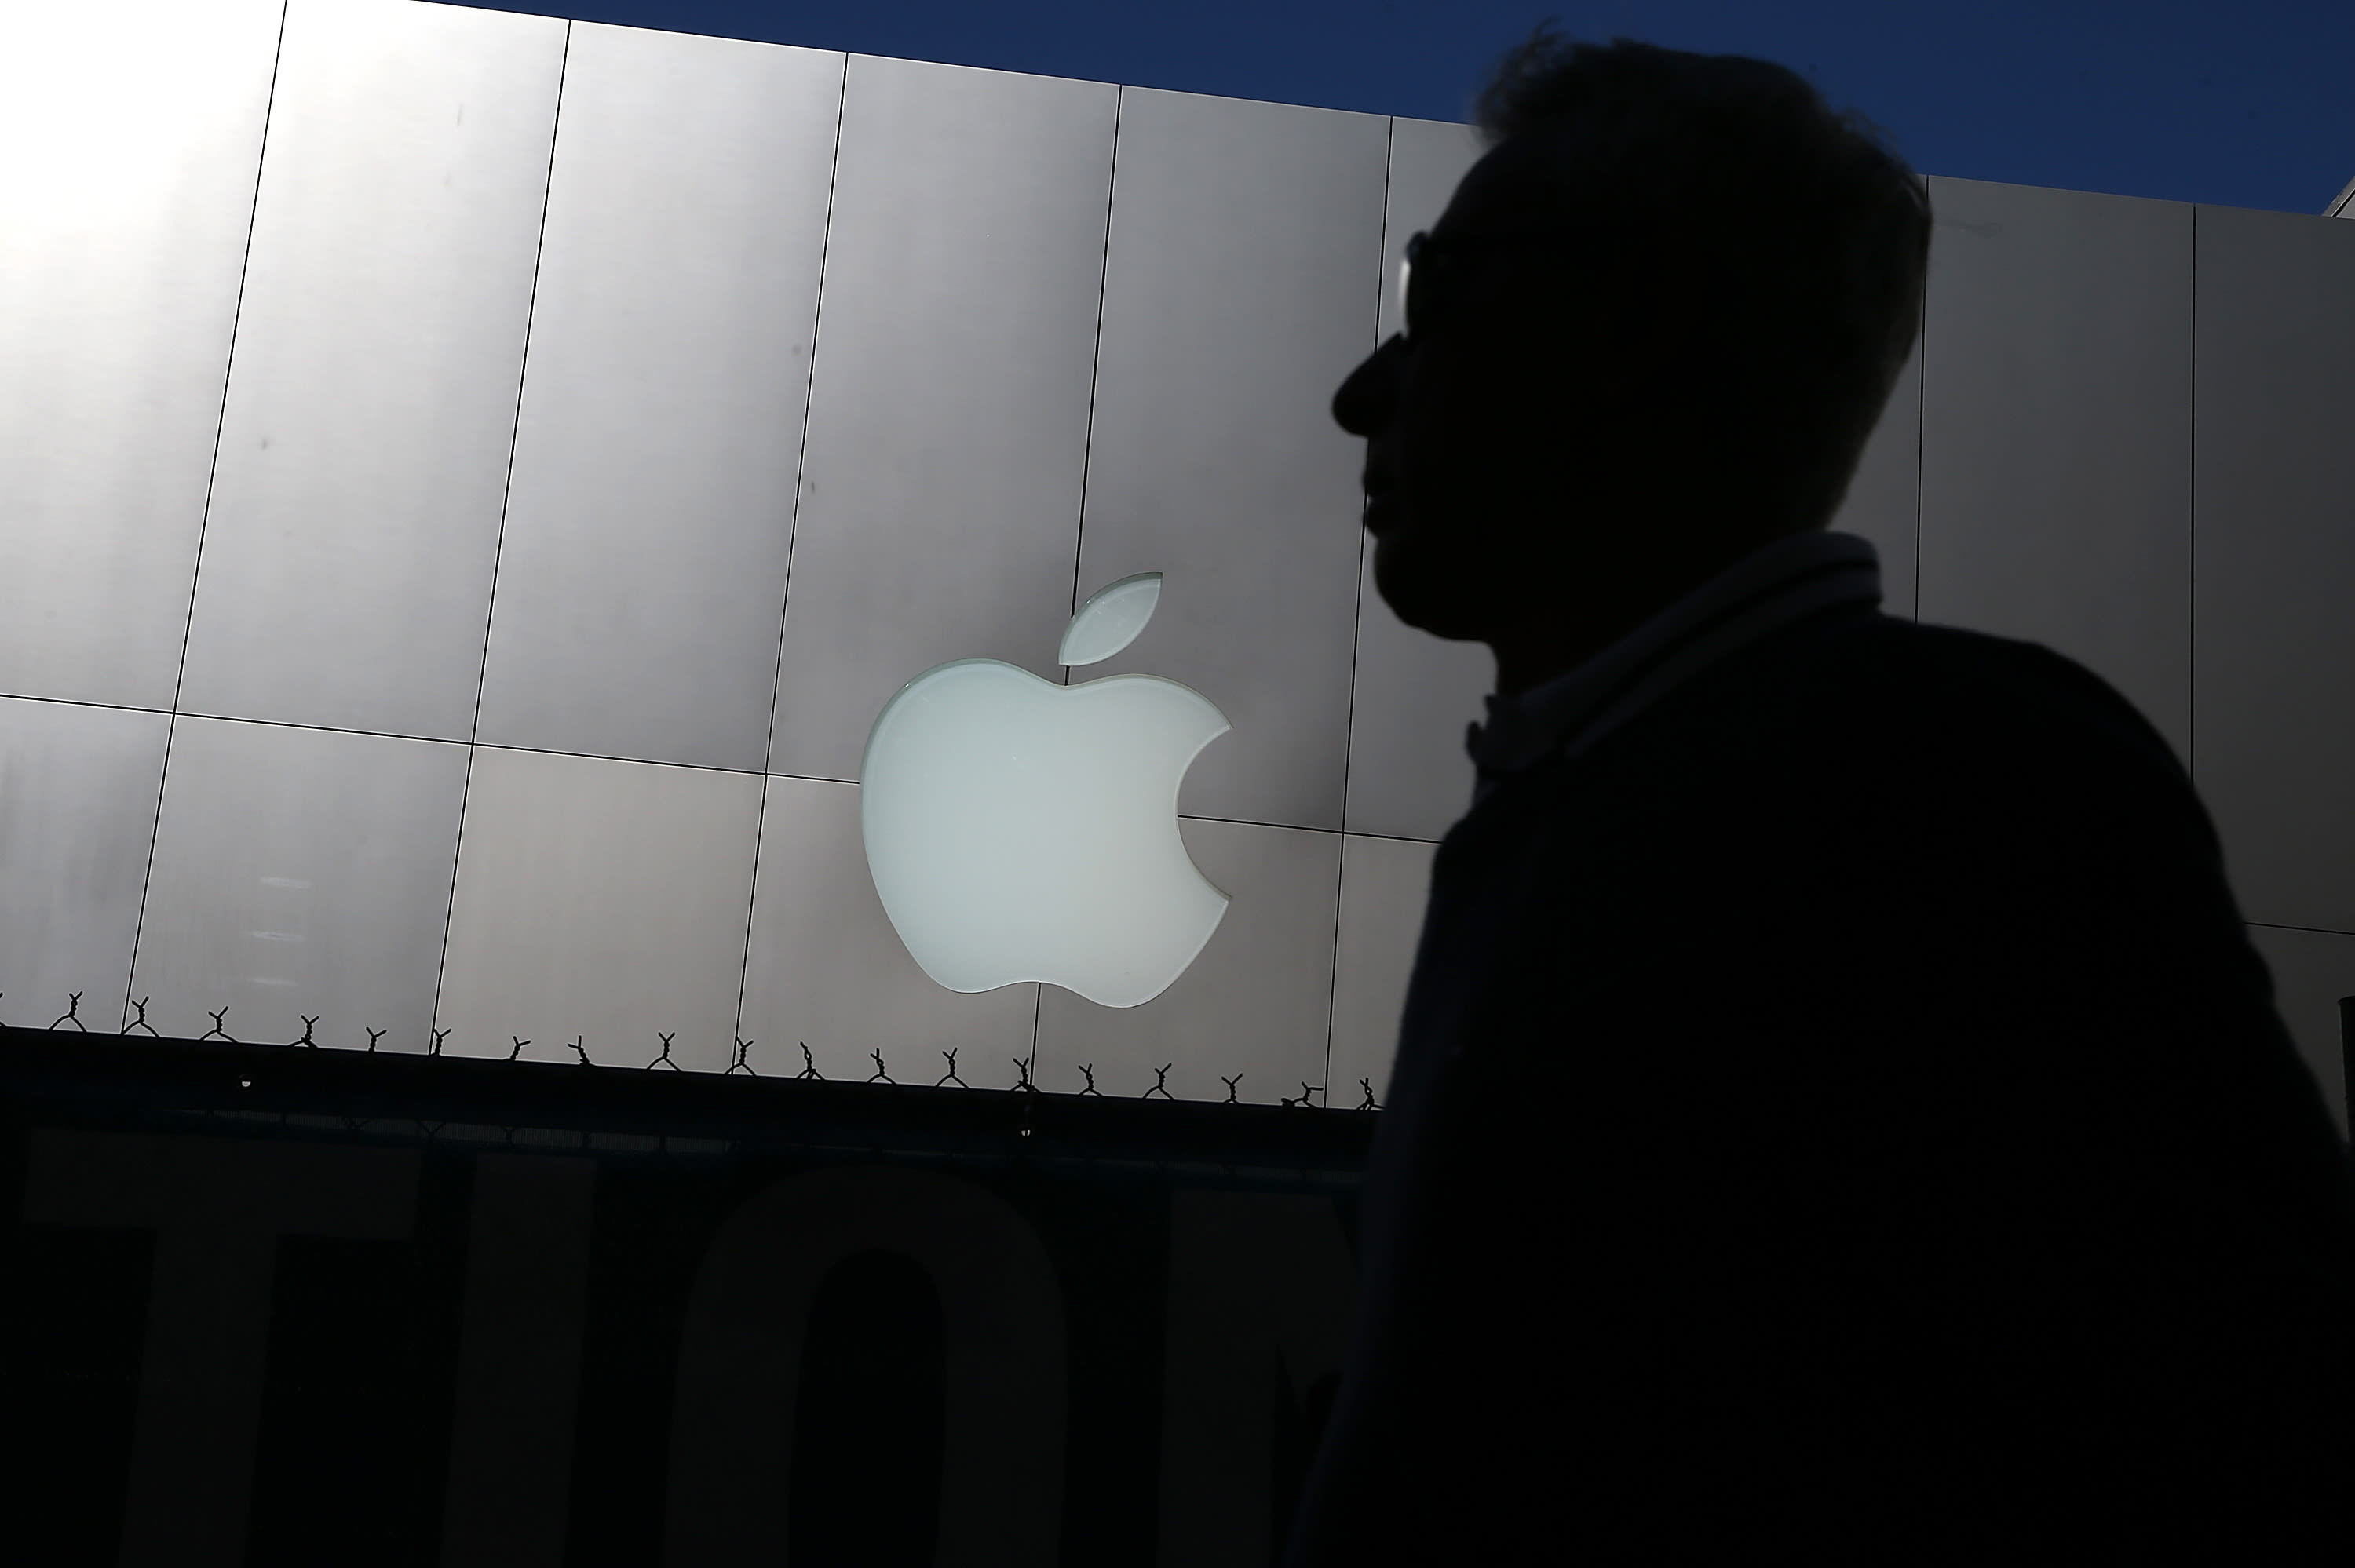 Apple says it's 'investing heavily' in machine learning in